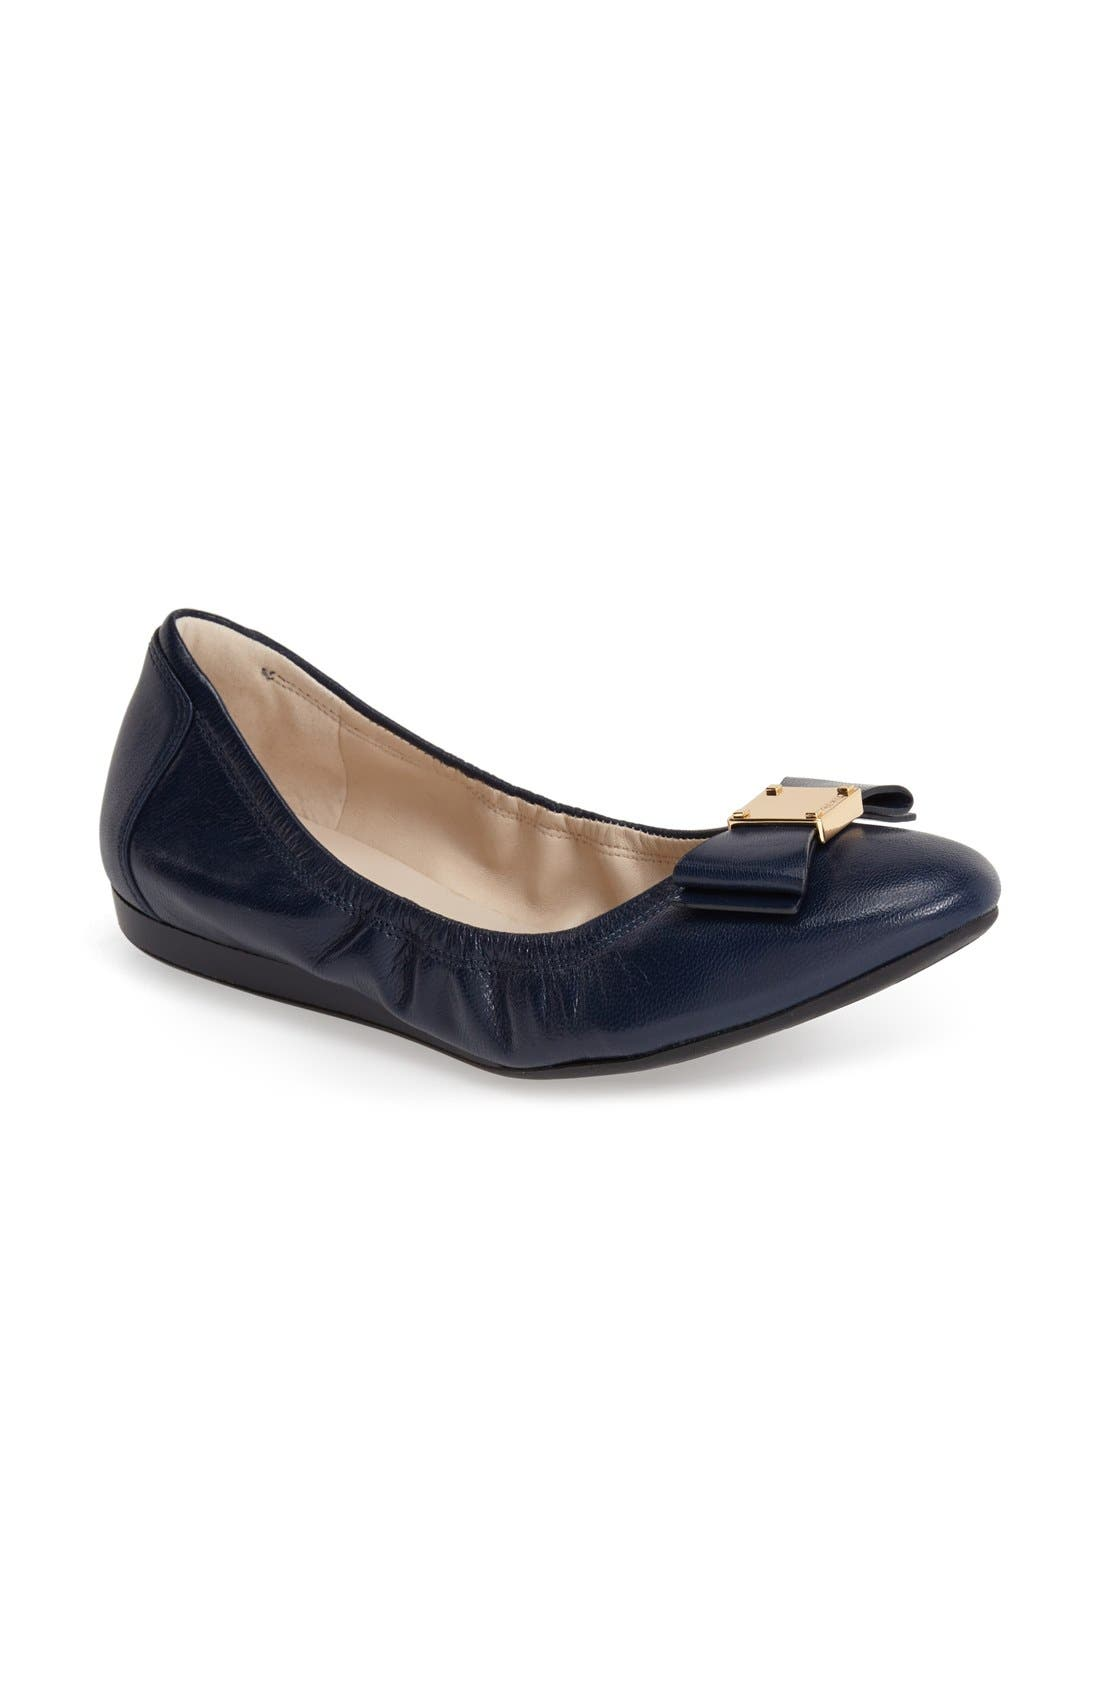 'Tali' Leather Ballet Flat,                         Main,                         color, Blazer Blue